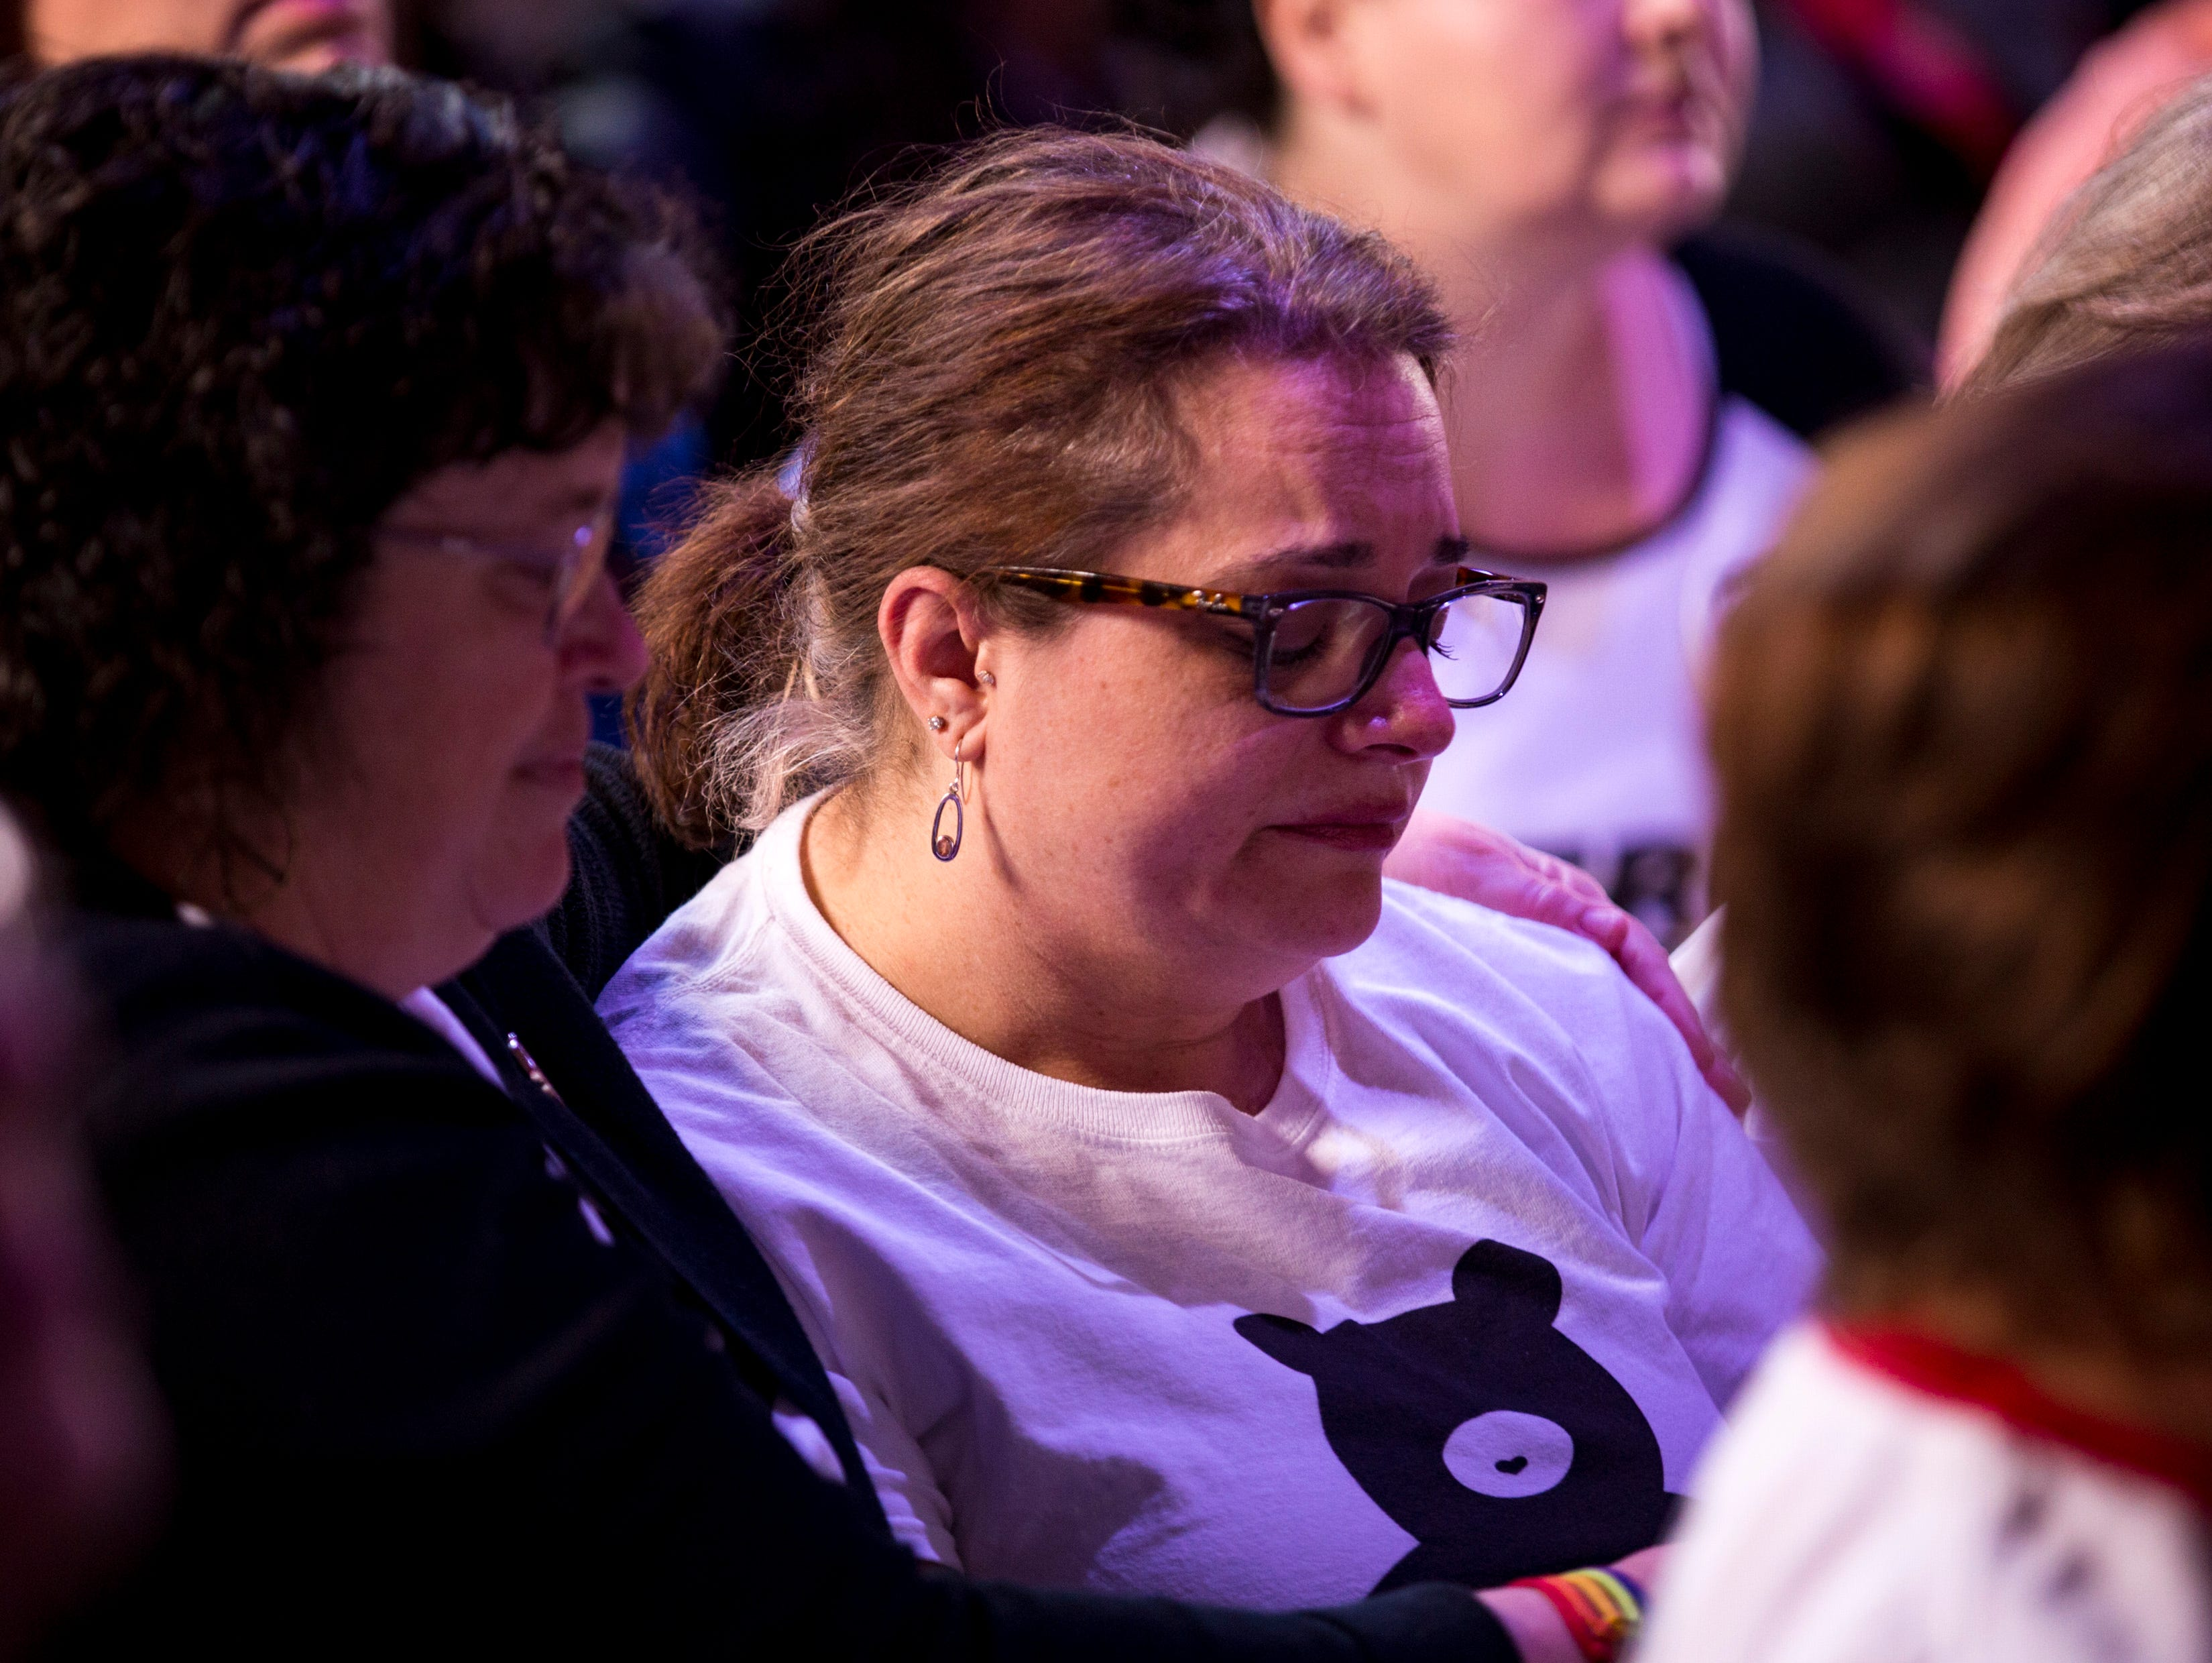 Heather Cluff is comforted as she starts to cry while the praise band performs at GracePointe Church in Nashville on Sunday, March 31, 2019.